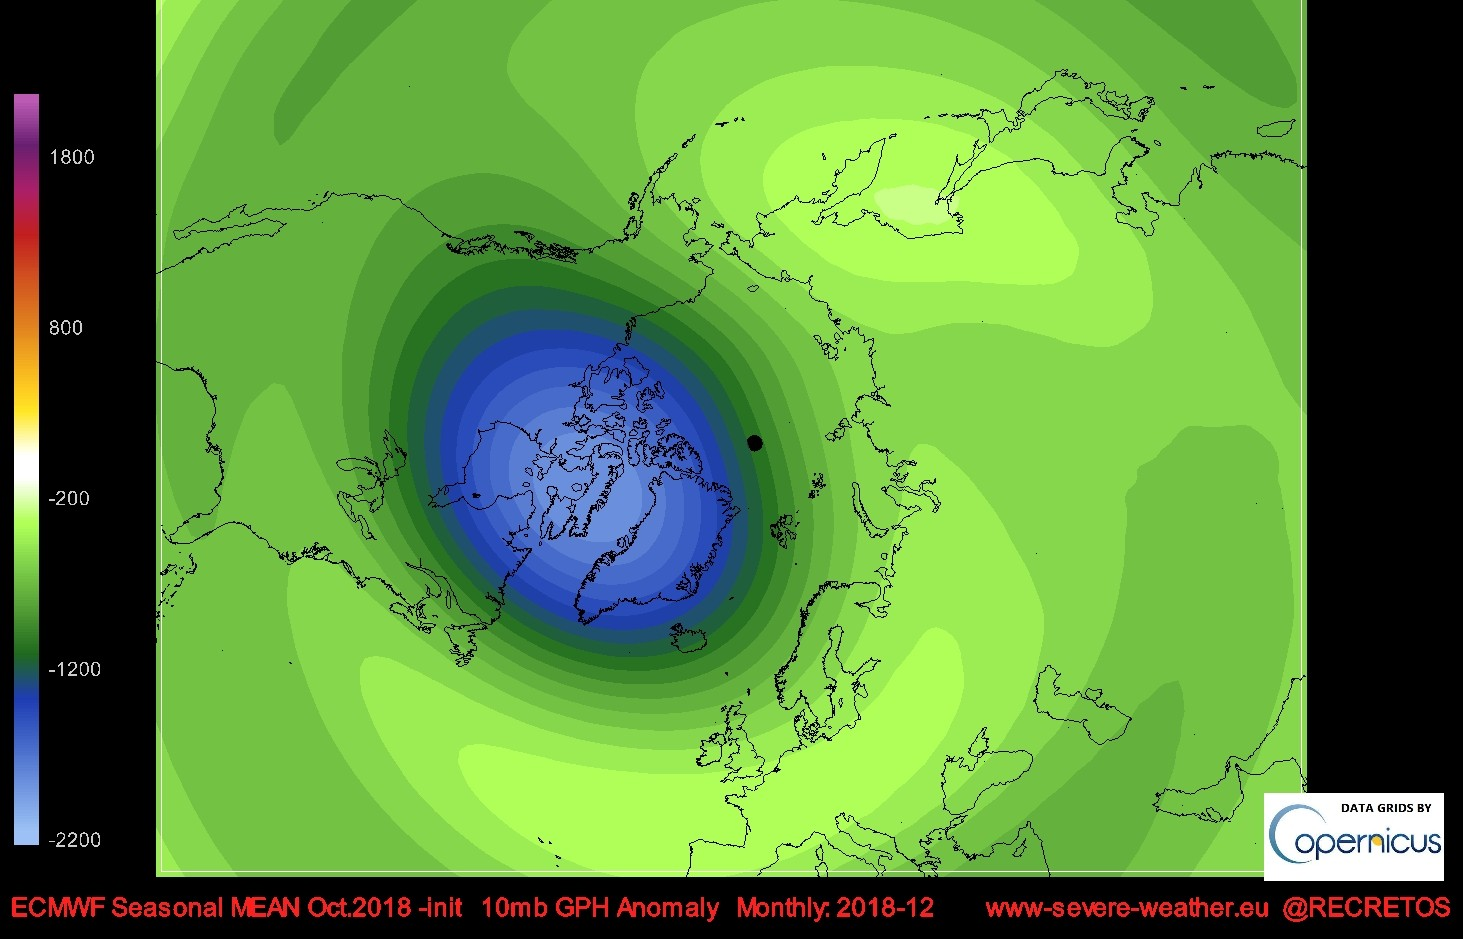 10Mb ecmwf seasonal 10mb geopotential height anomaly forecast